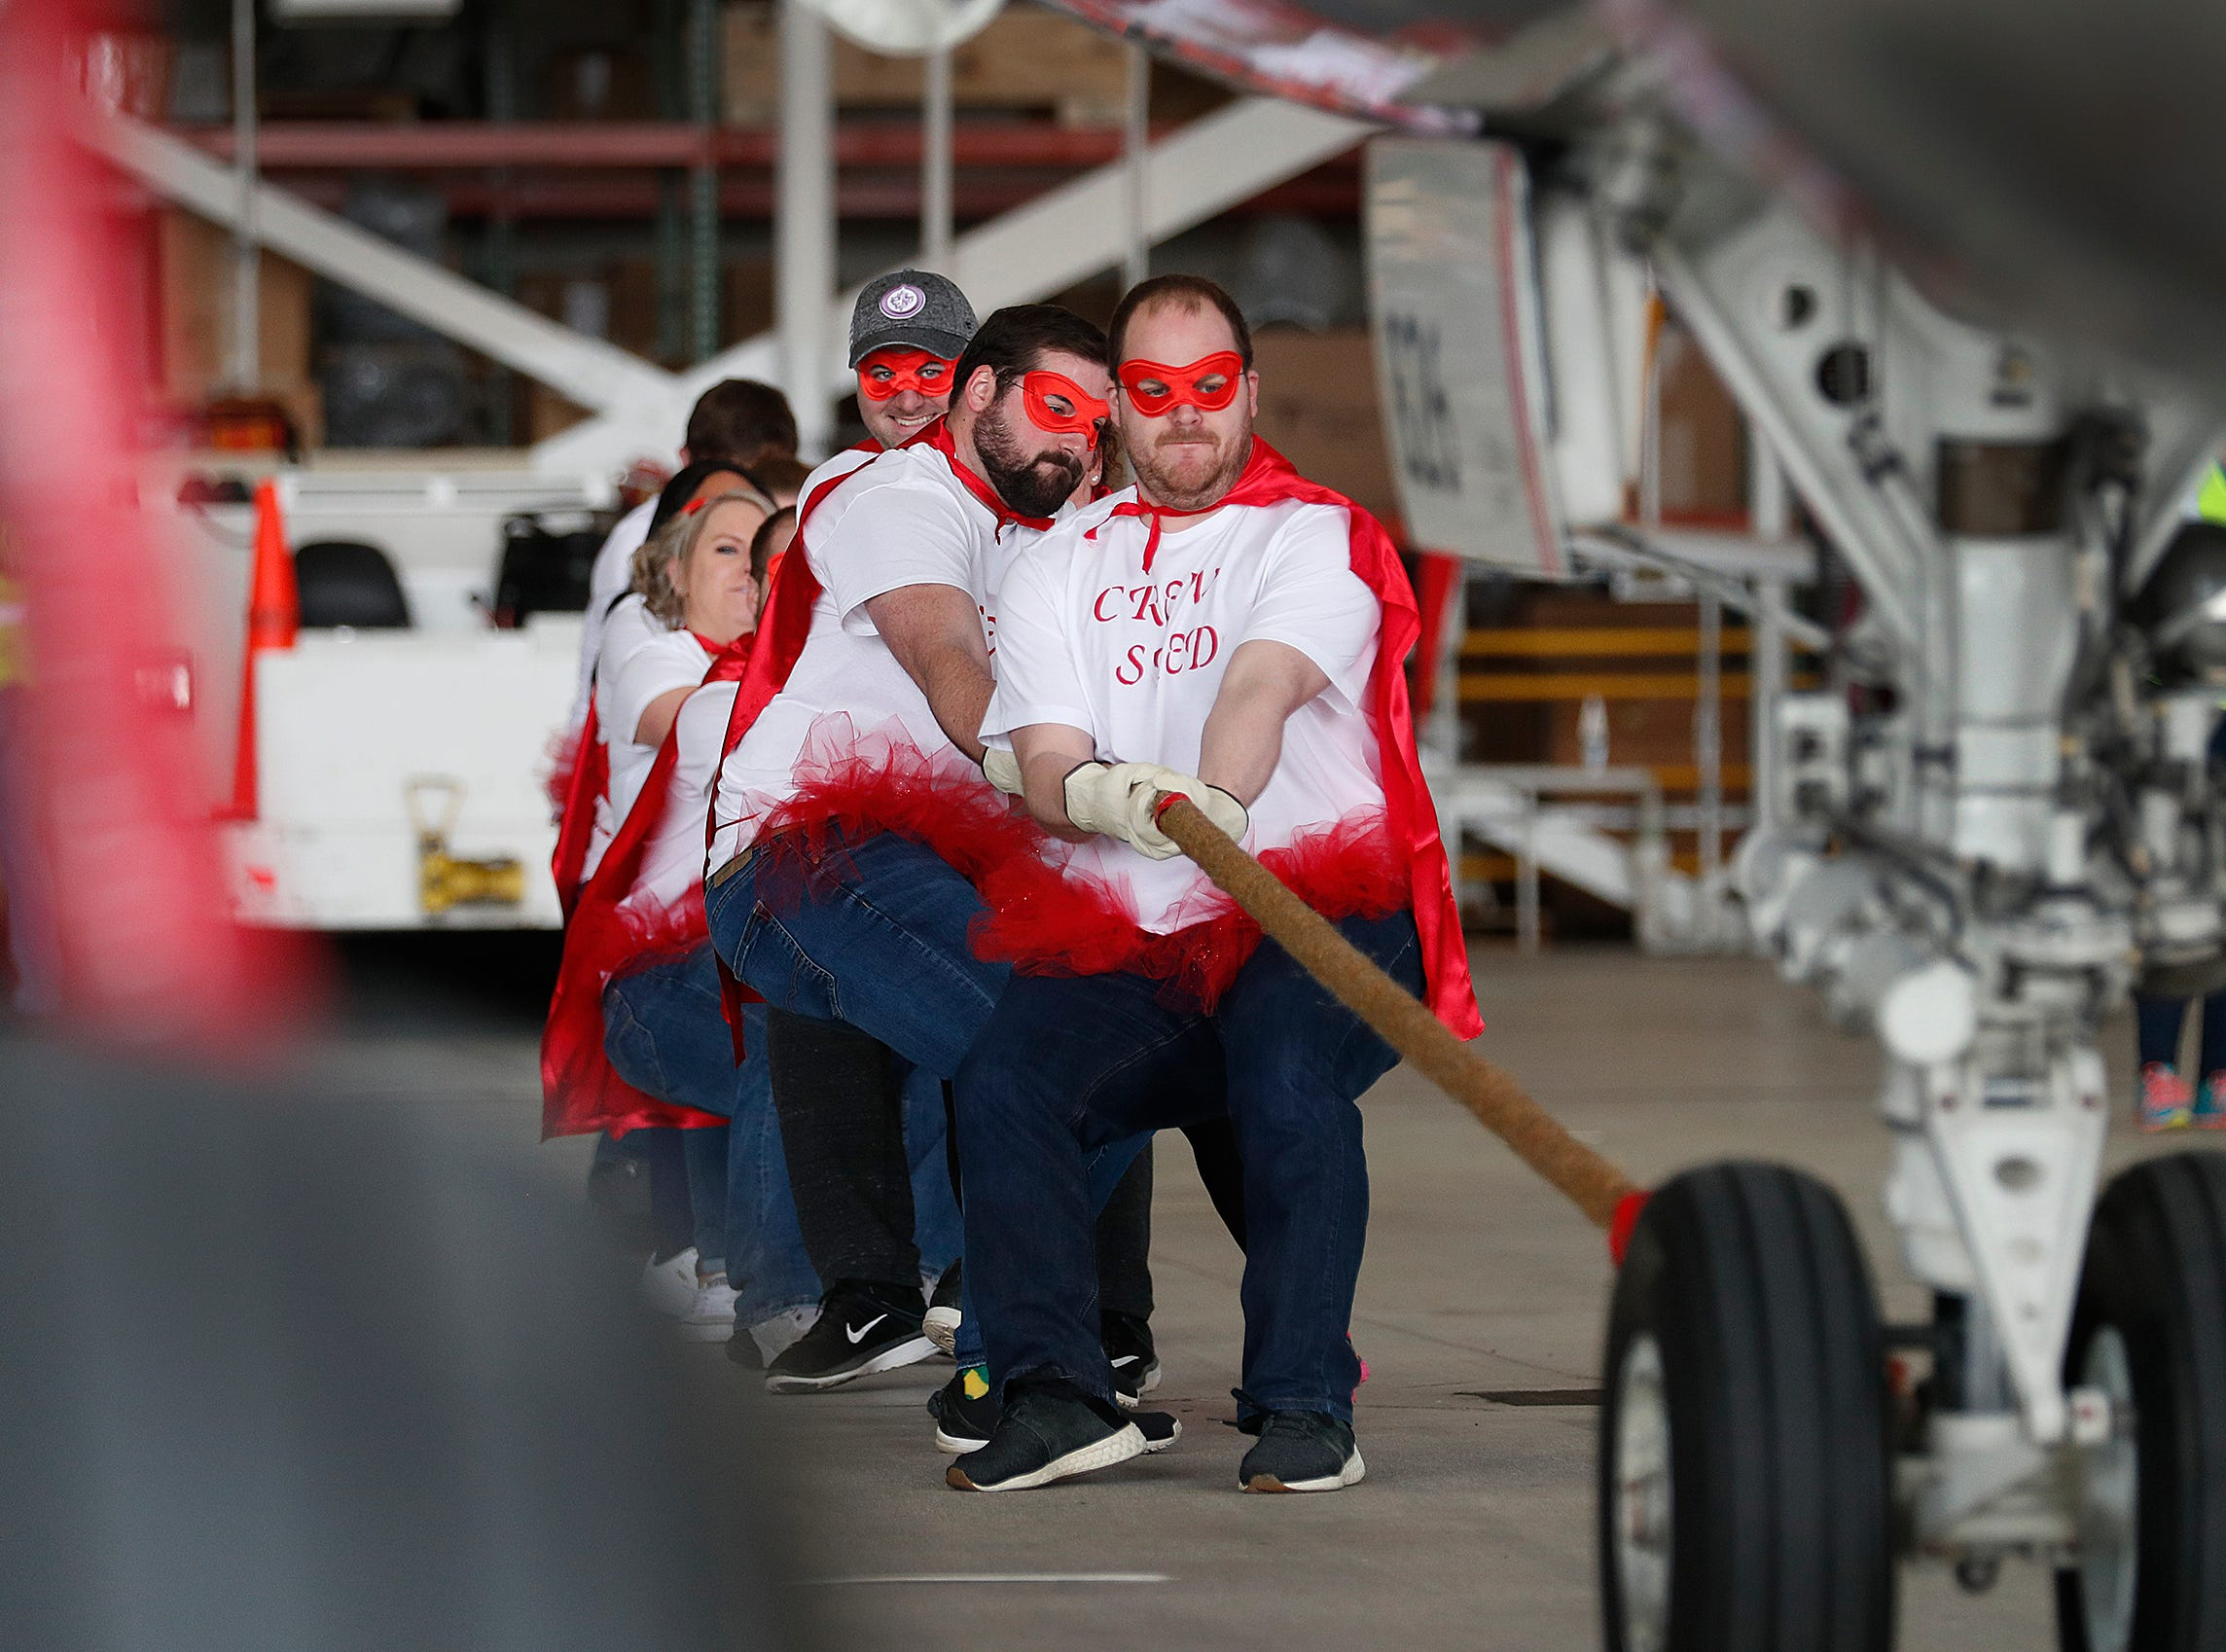 Team We'll Pull It for Red Flag Pay (Republic SOC) pulls an Embraer 170/175 aircraft 15 feet during the 9th Annual Republic Airways Plane Pull at the Republic Airways Hanger at the Indianapolis International Airport on Saturday, April 13, 2019.